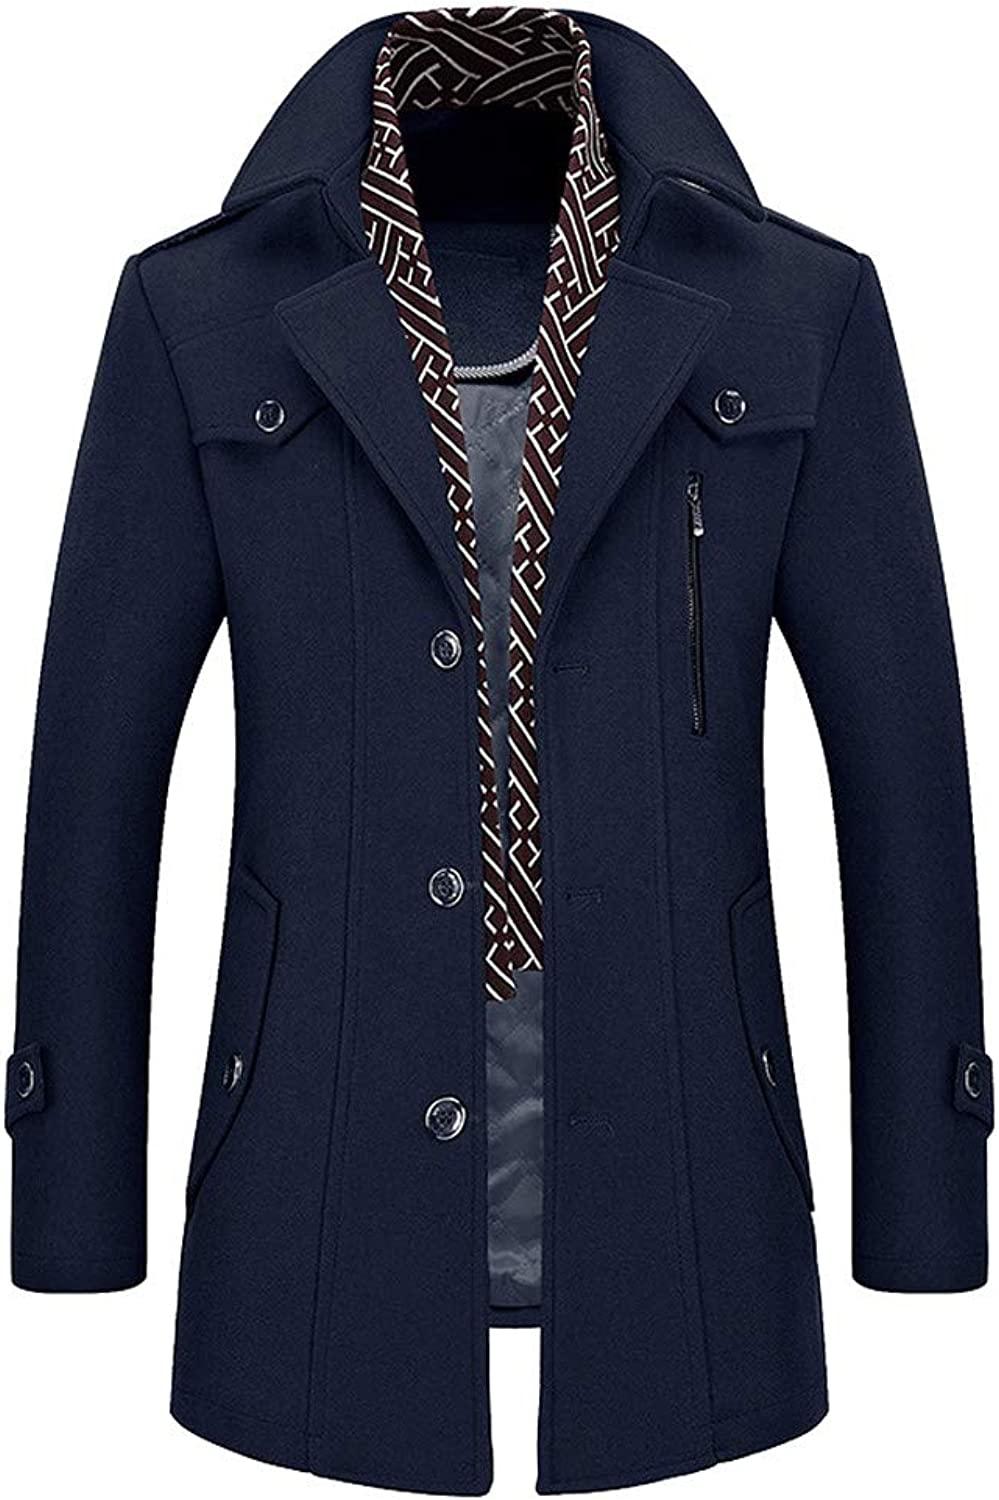 Allywit Men's Wool Trench Coat Winter Business Suits Quality Long Top Coat Jacket